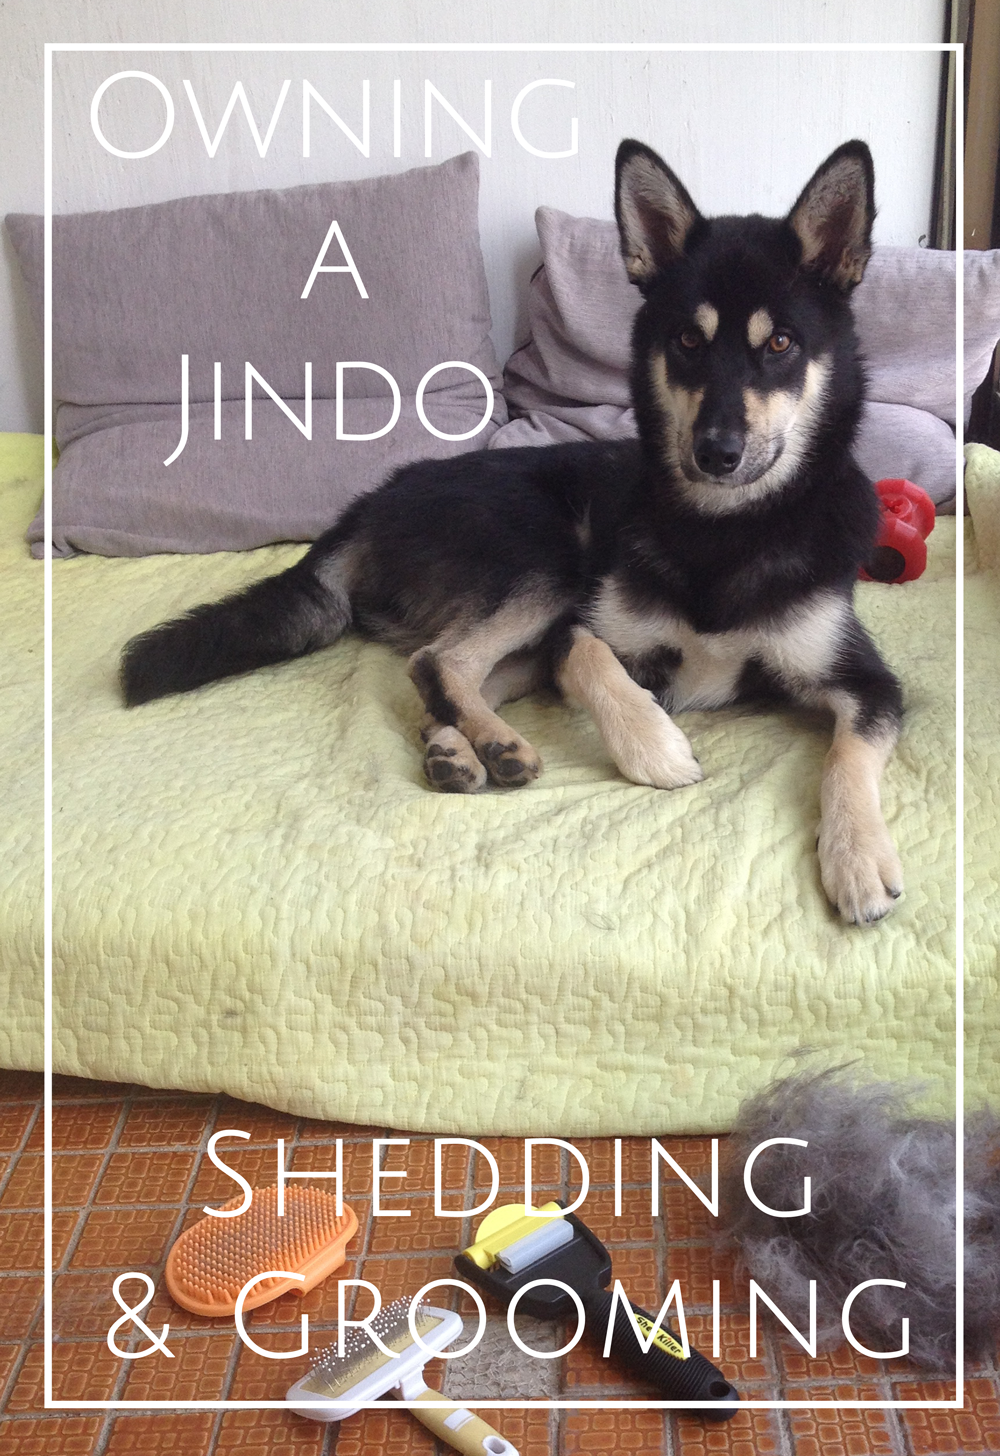 KoreanJindoSheddingGrooming